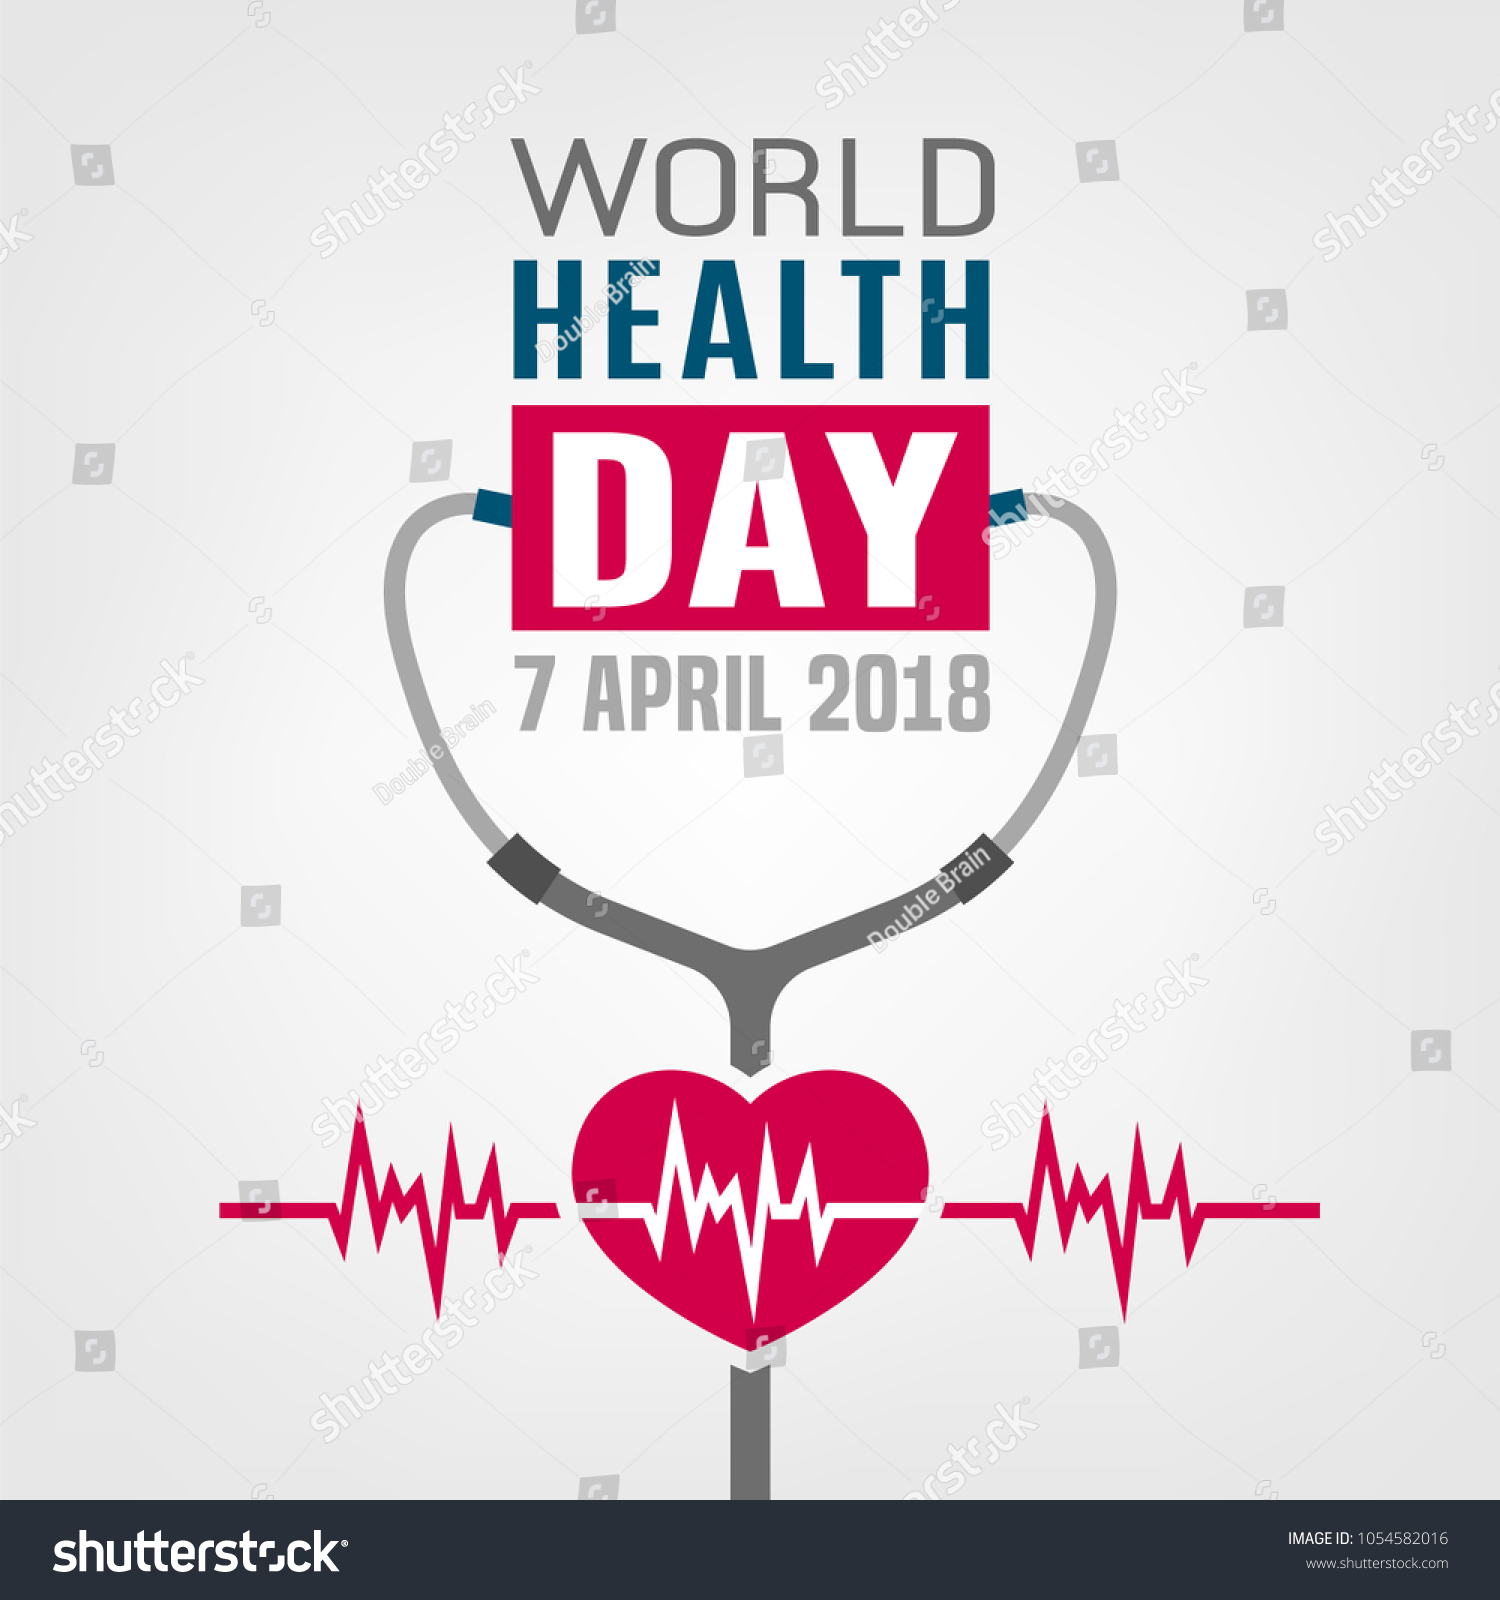 World Health Day Concept 7 April 2018 Medicine And Healthcare Image Editable Vector